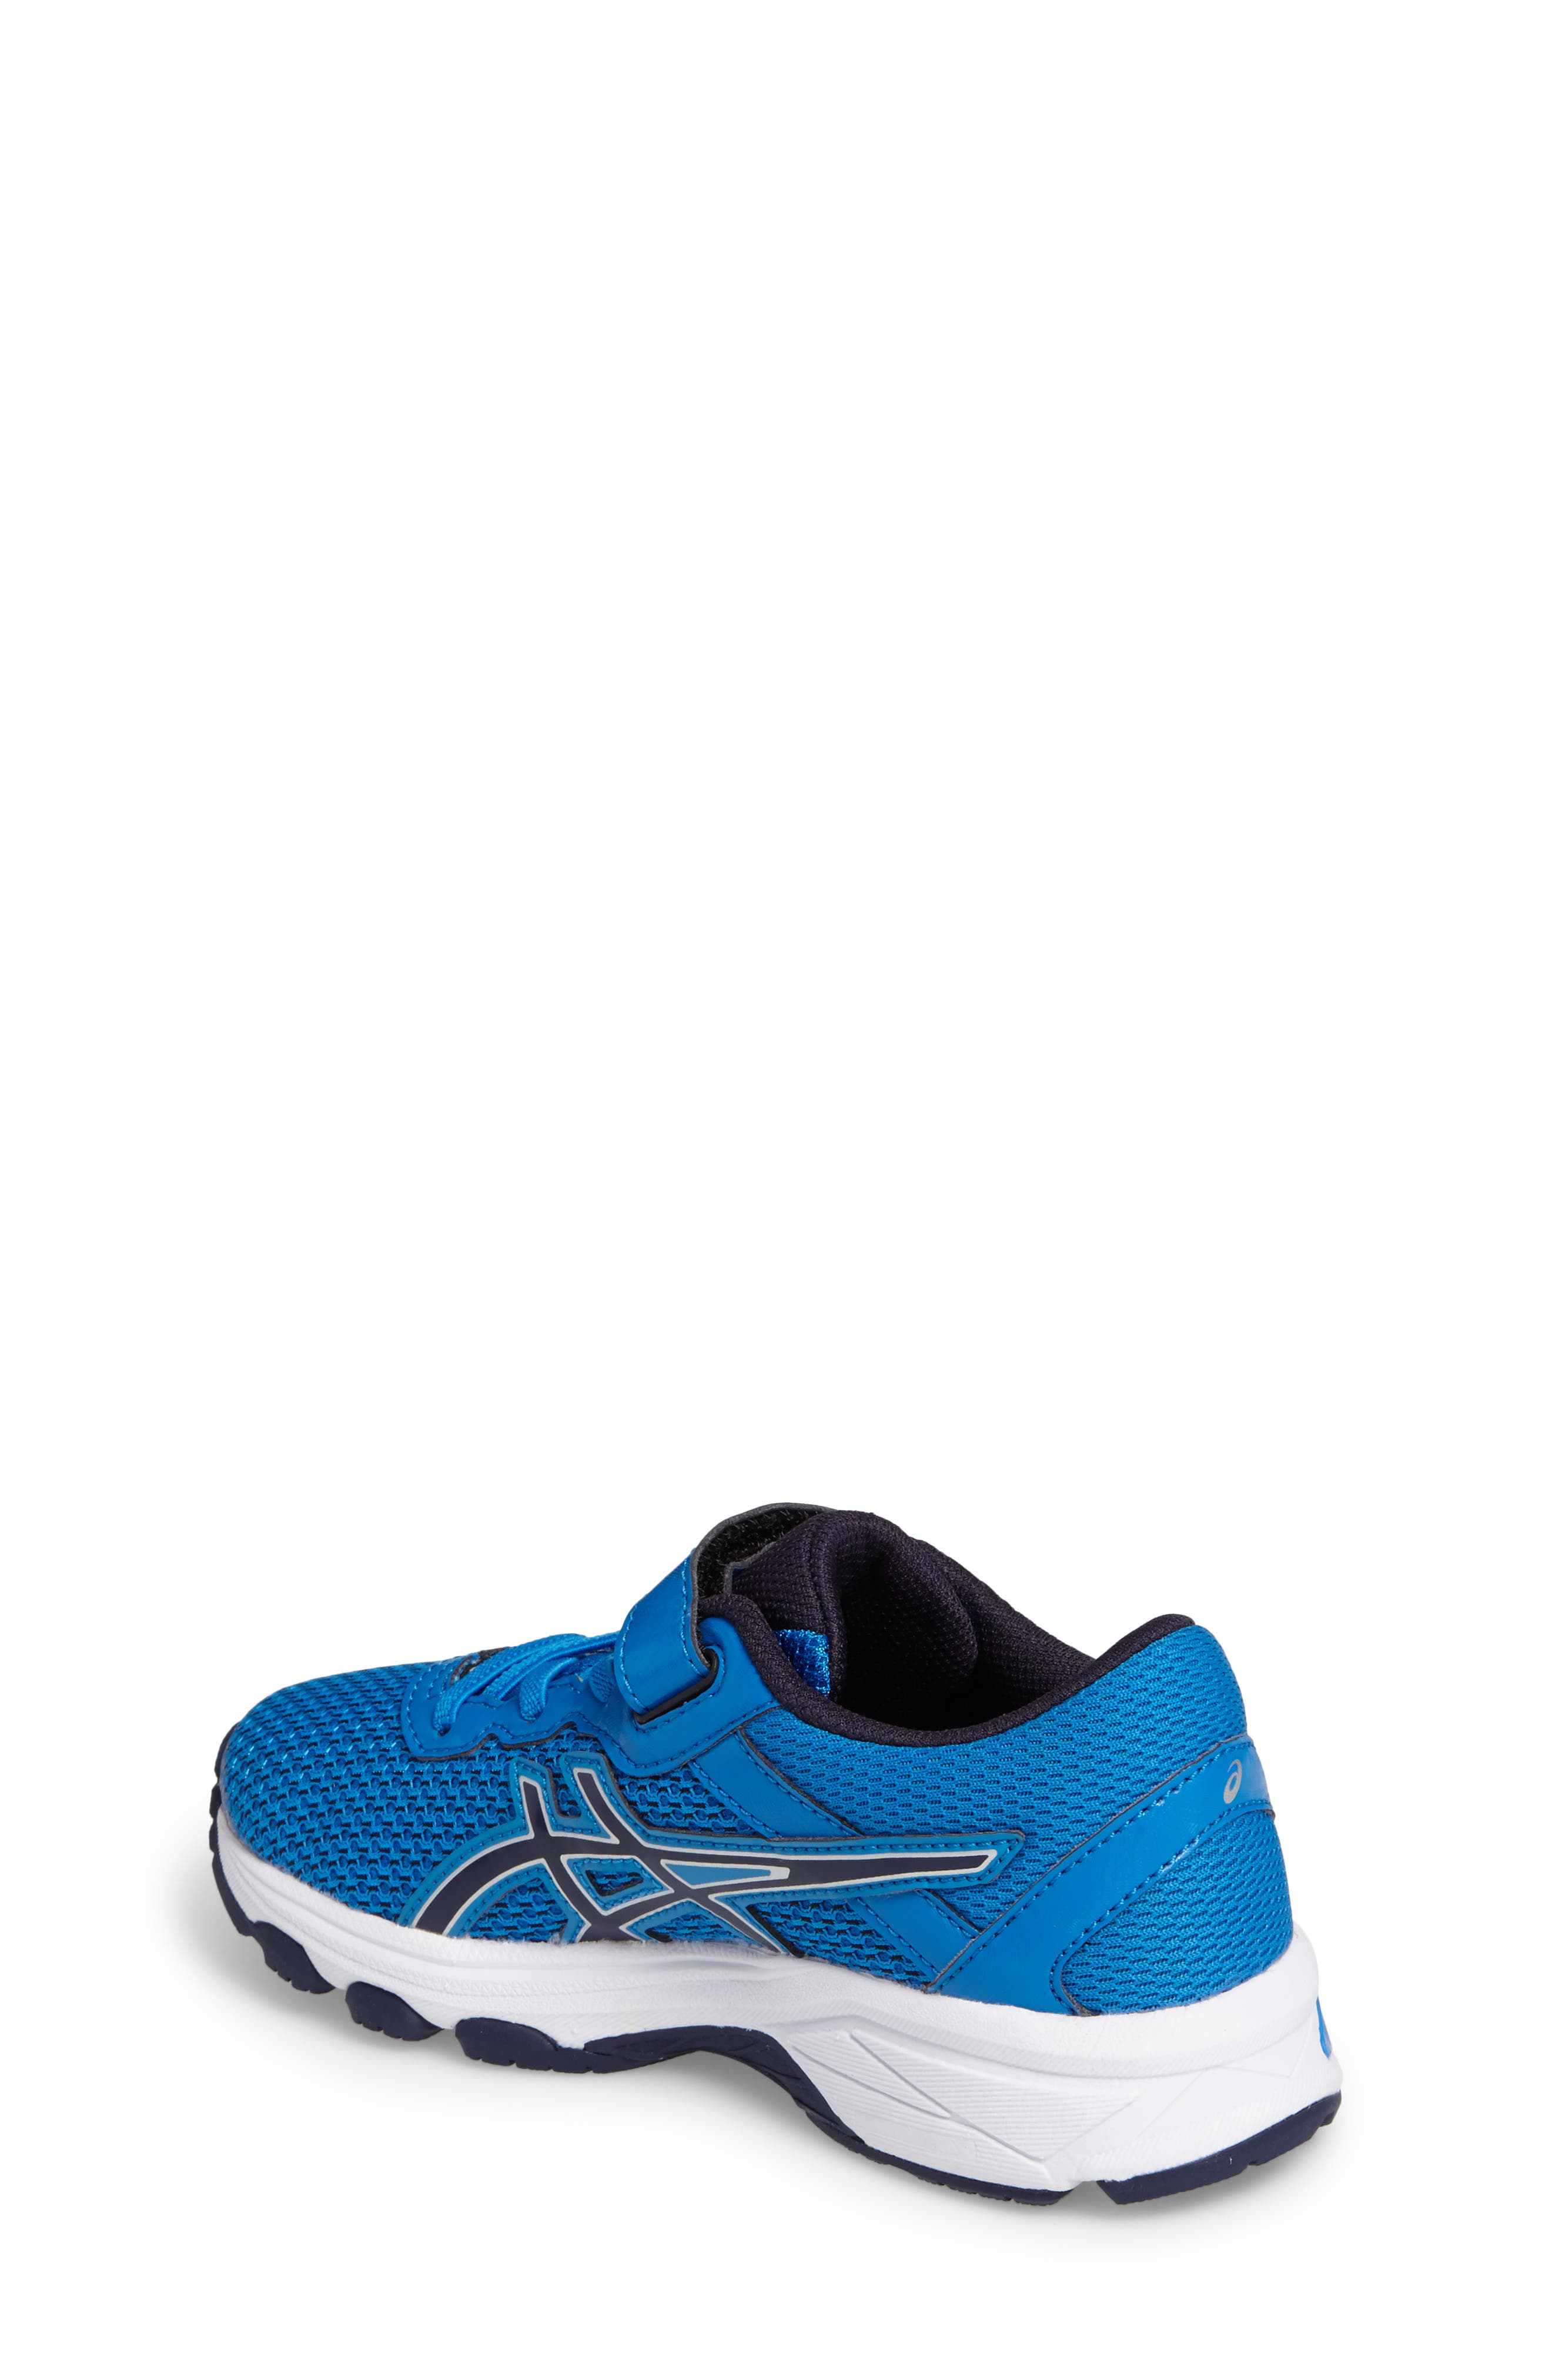 Asics GT-1000<sup>™</sup> 6 PS Sneaker,                             Alternate thumbnail 2, color,                             Blue/ Peacock